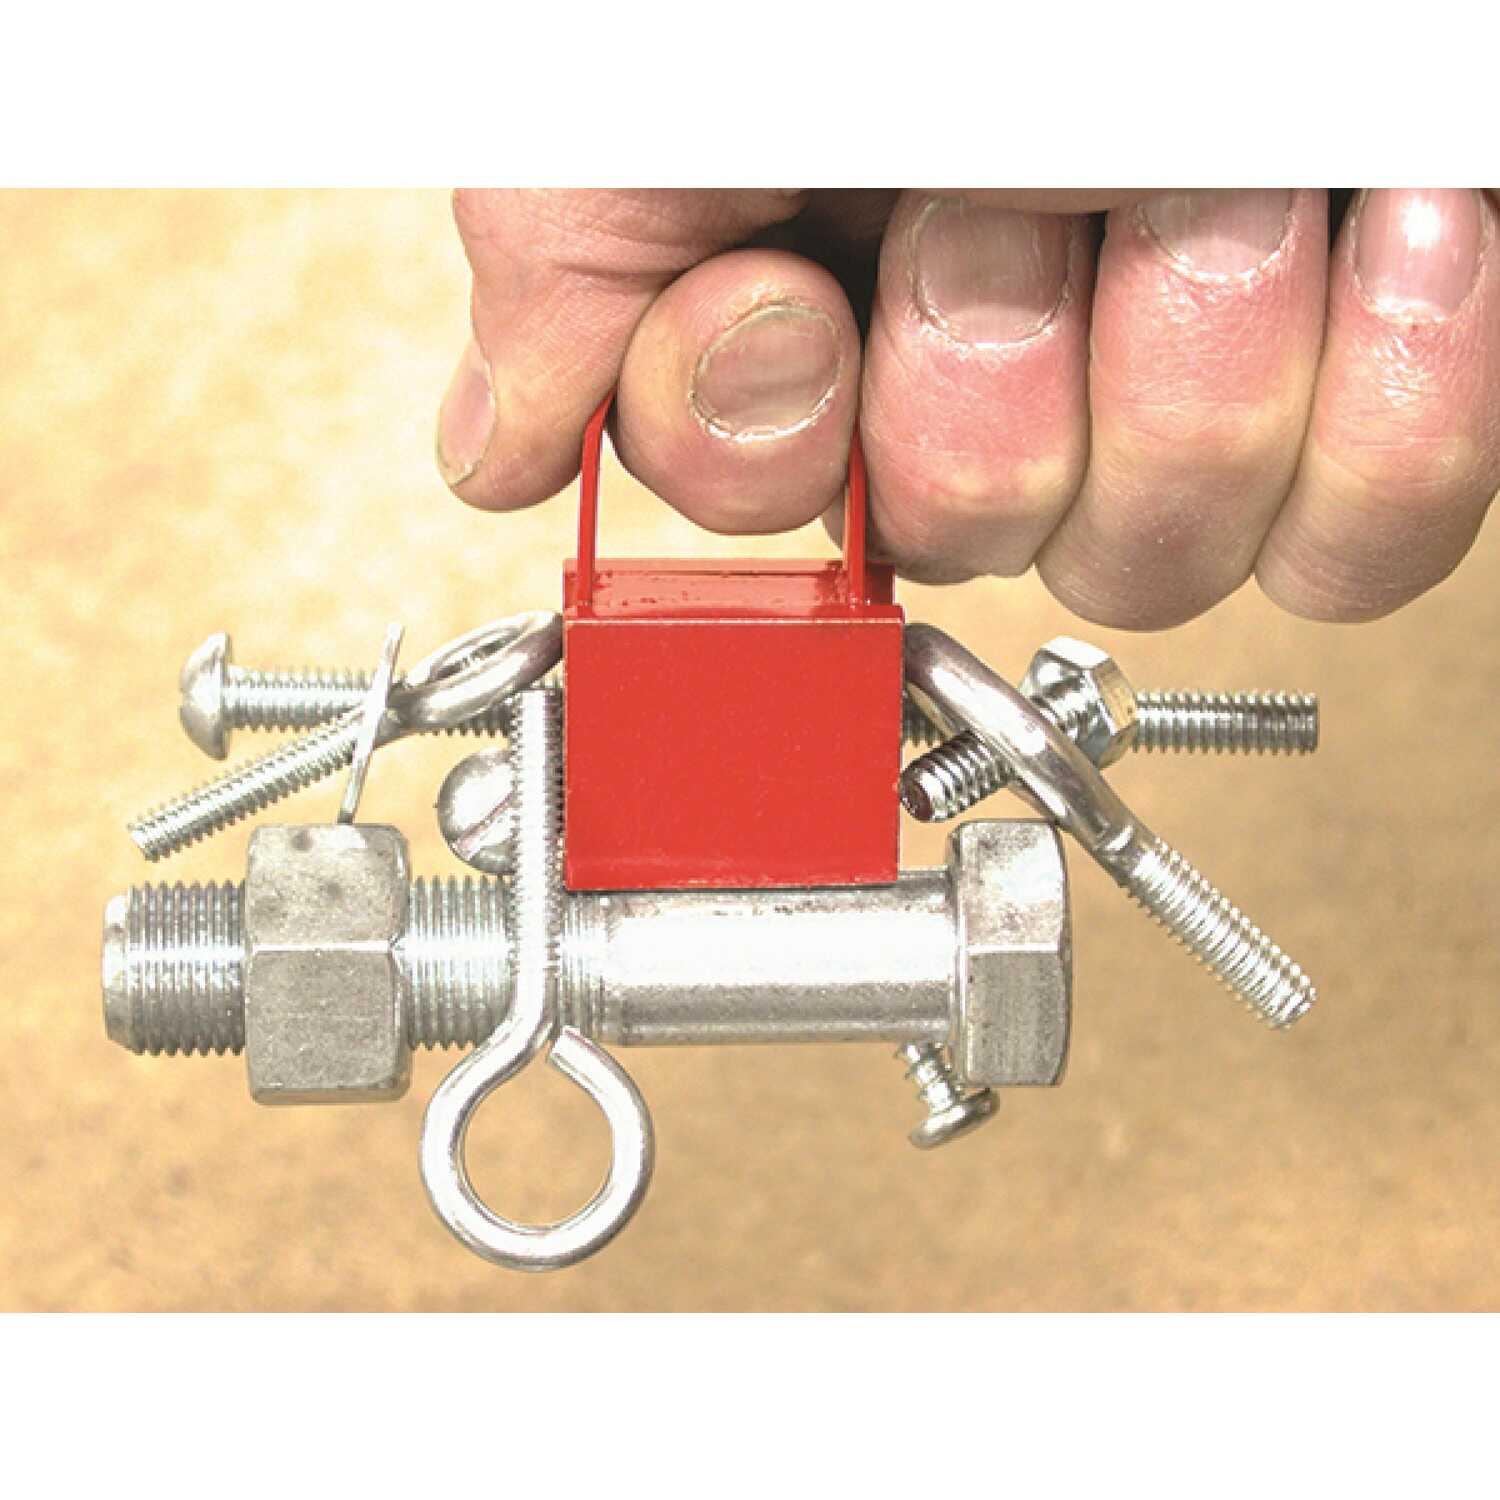 Master Magnetics  1 in. Ceramic  Handle Magnet  25 lb. pull 3.4 MGOe Red  1 pc.